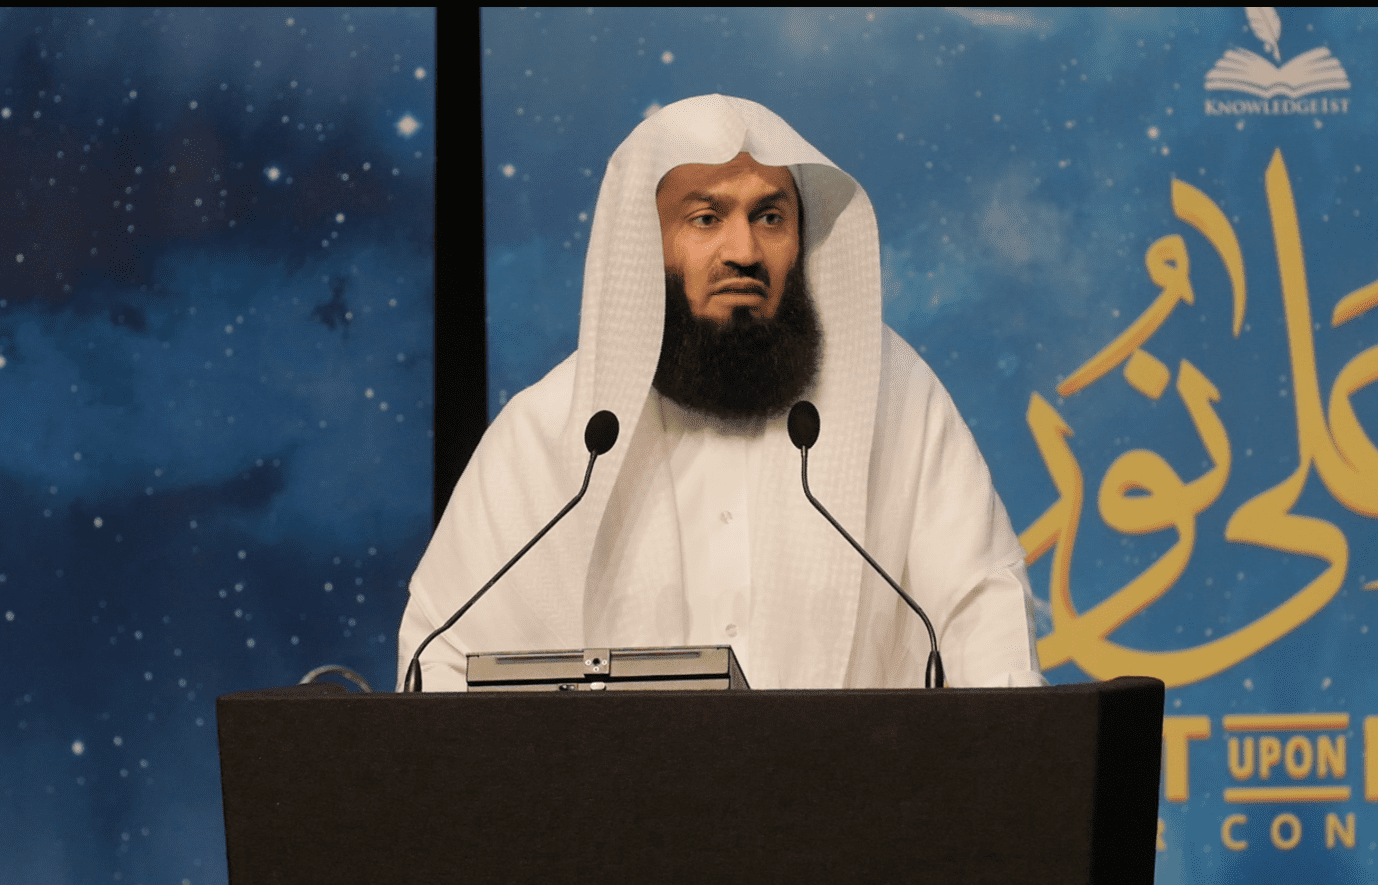 The Light Upon Light with Mufti Menk